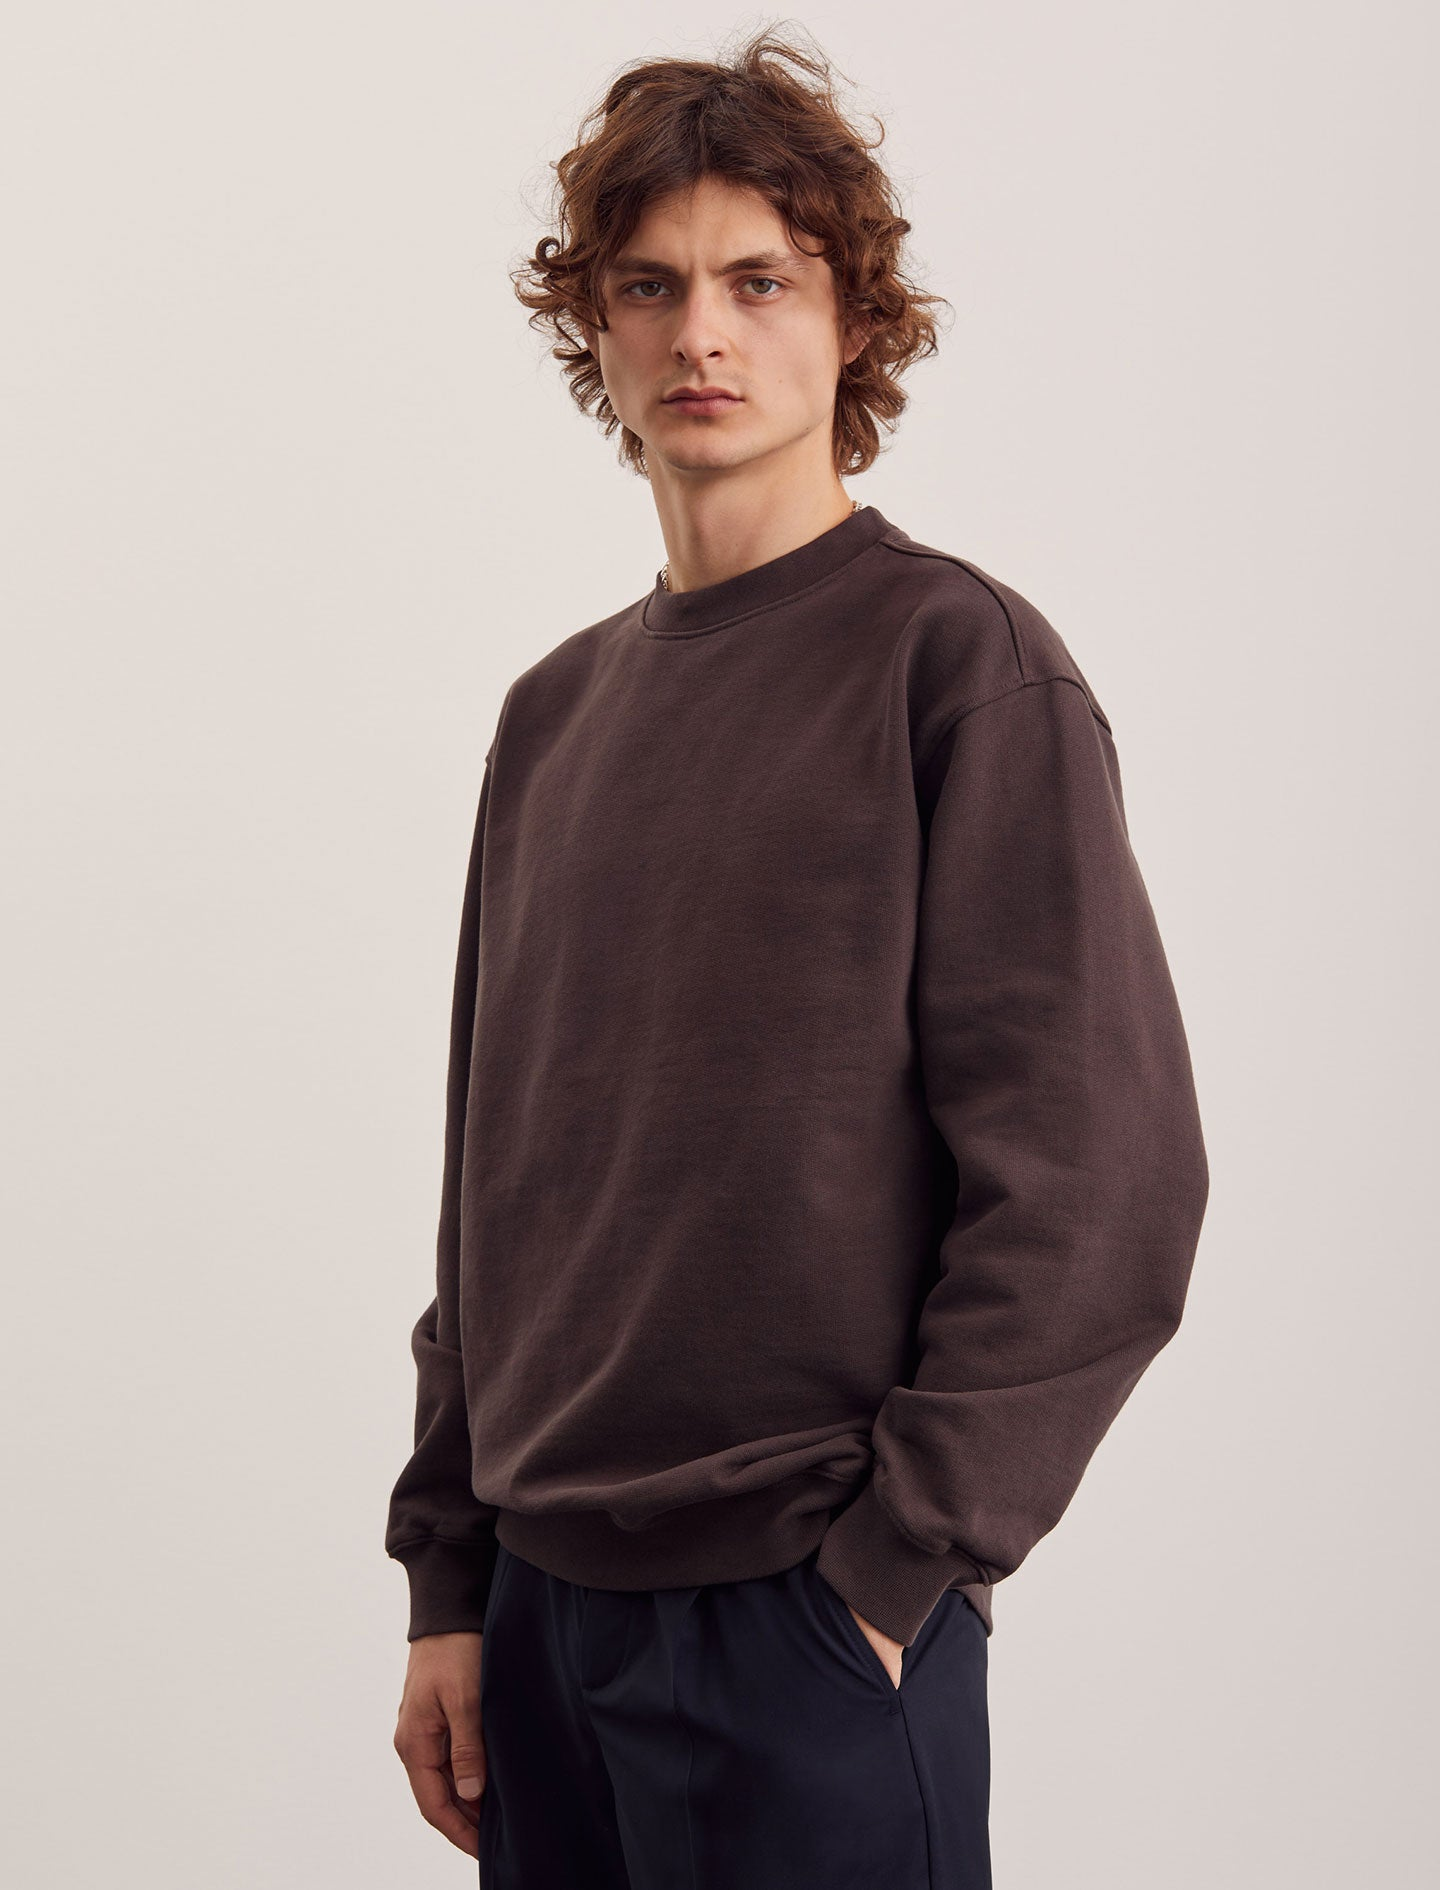 ANOTHER Sweatshirt 1.0, Antique Brown